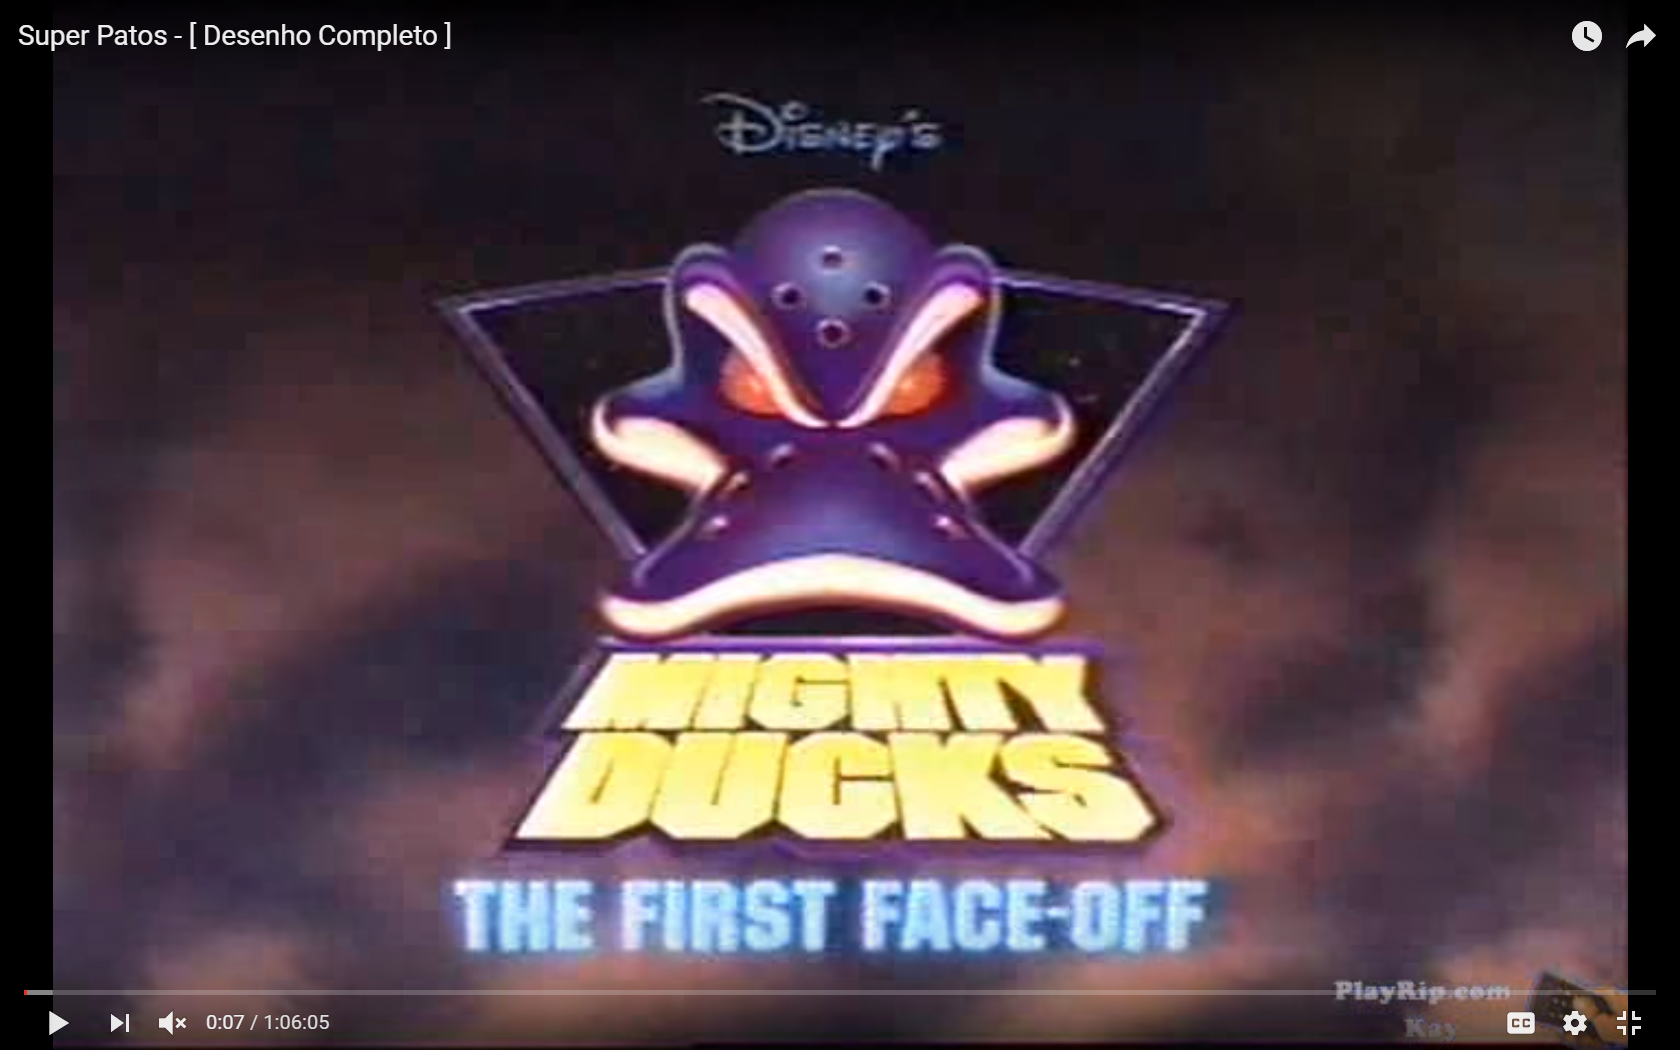 Mighty Ducks: The First Face Off